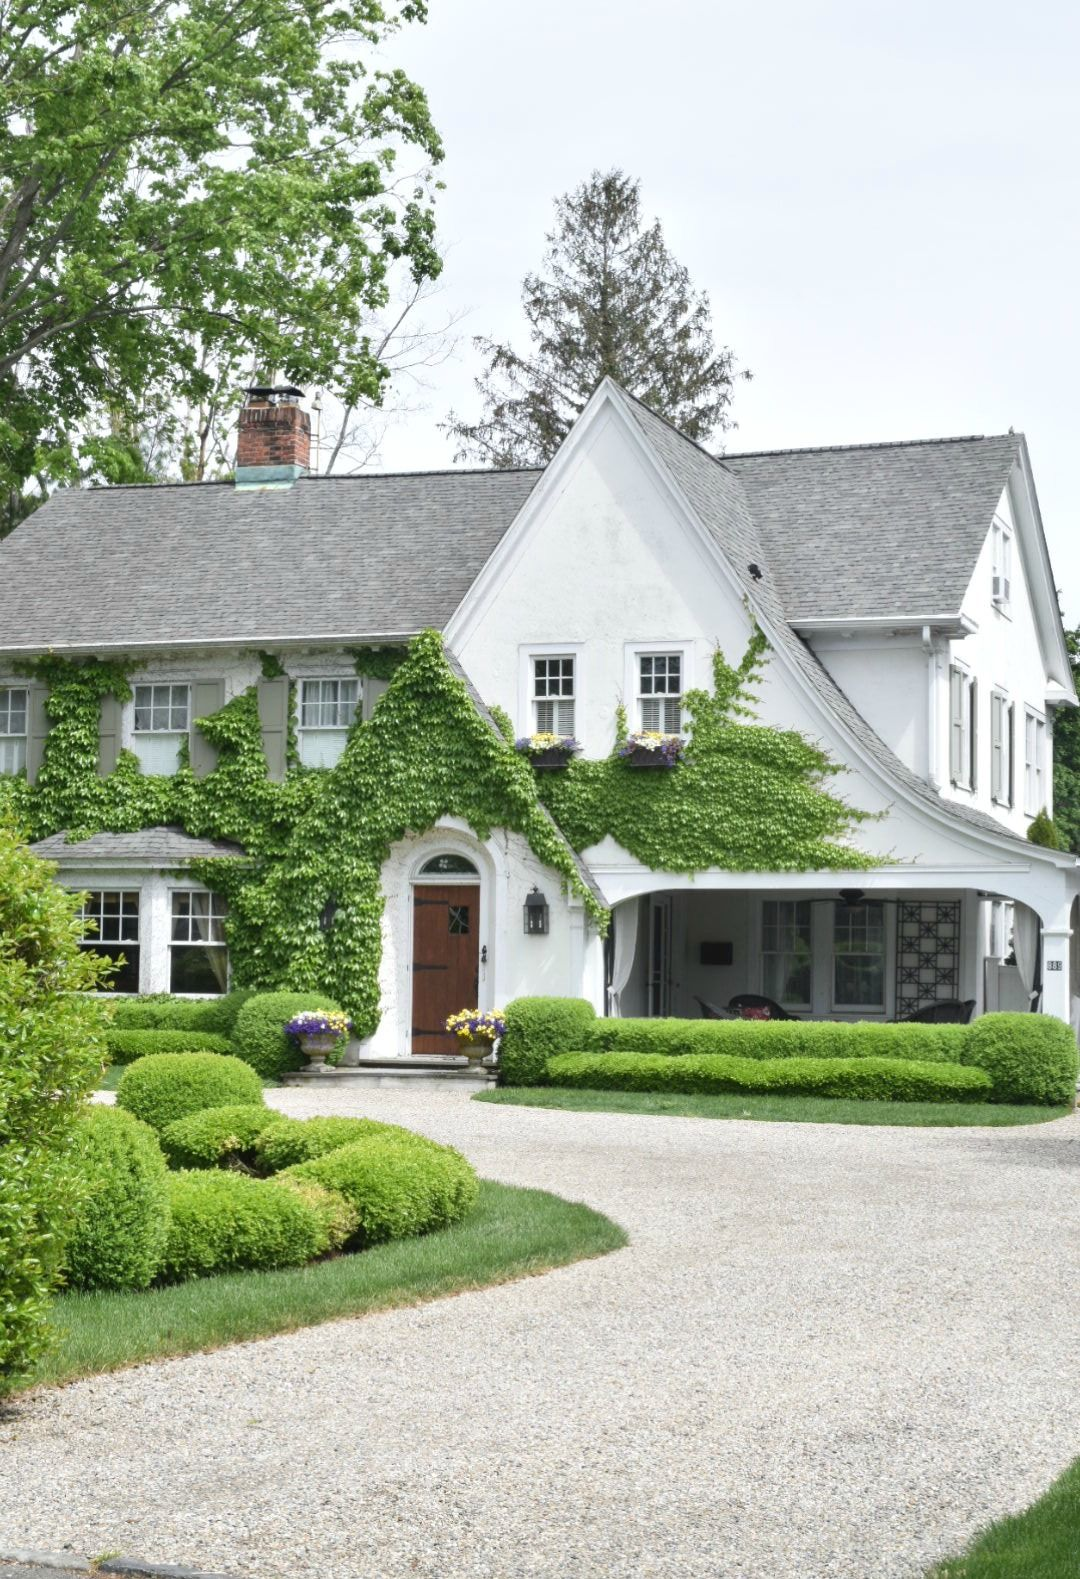 new england homes exterior paint color ideas english on exterior home paint ideas pictures id=16947